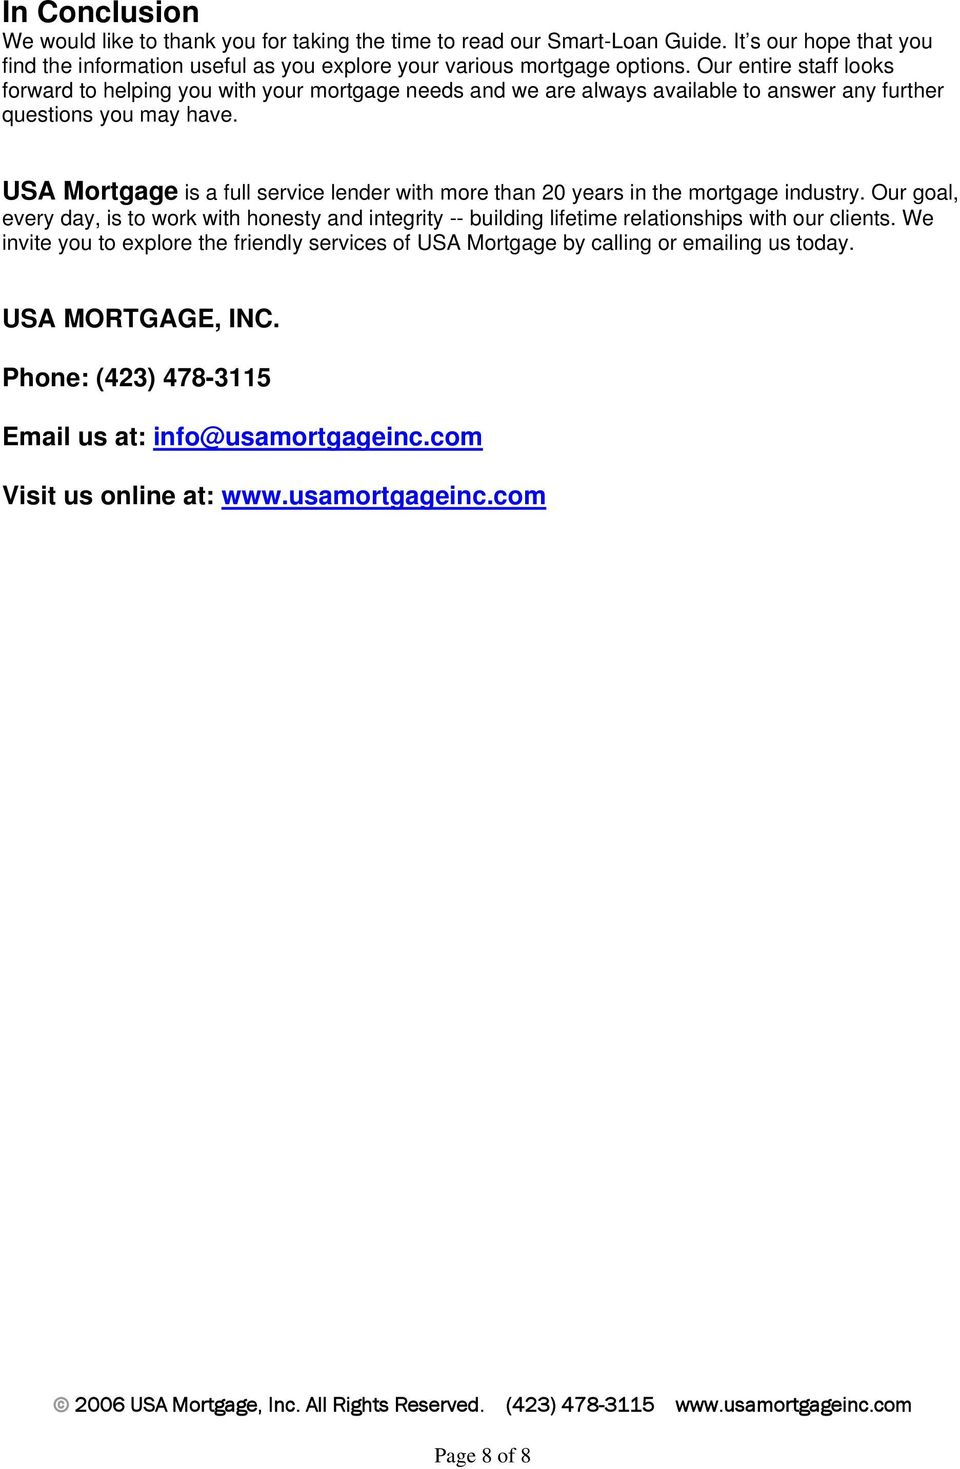 USA Mortgage is a full service lender with more than 20 years in the mortgage industry.